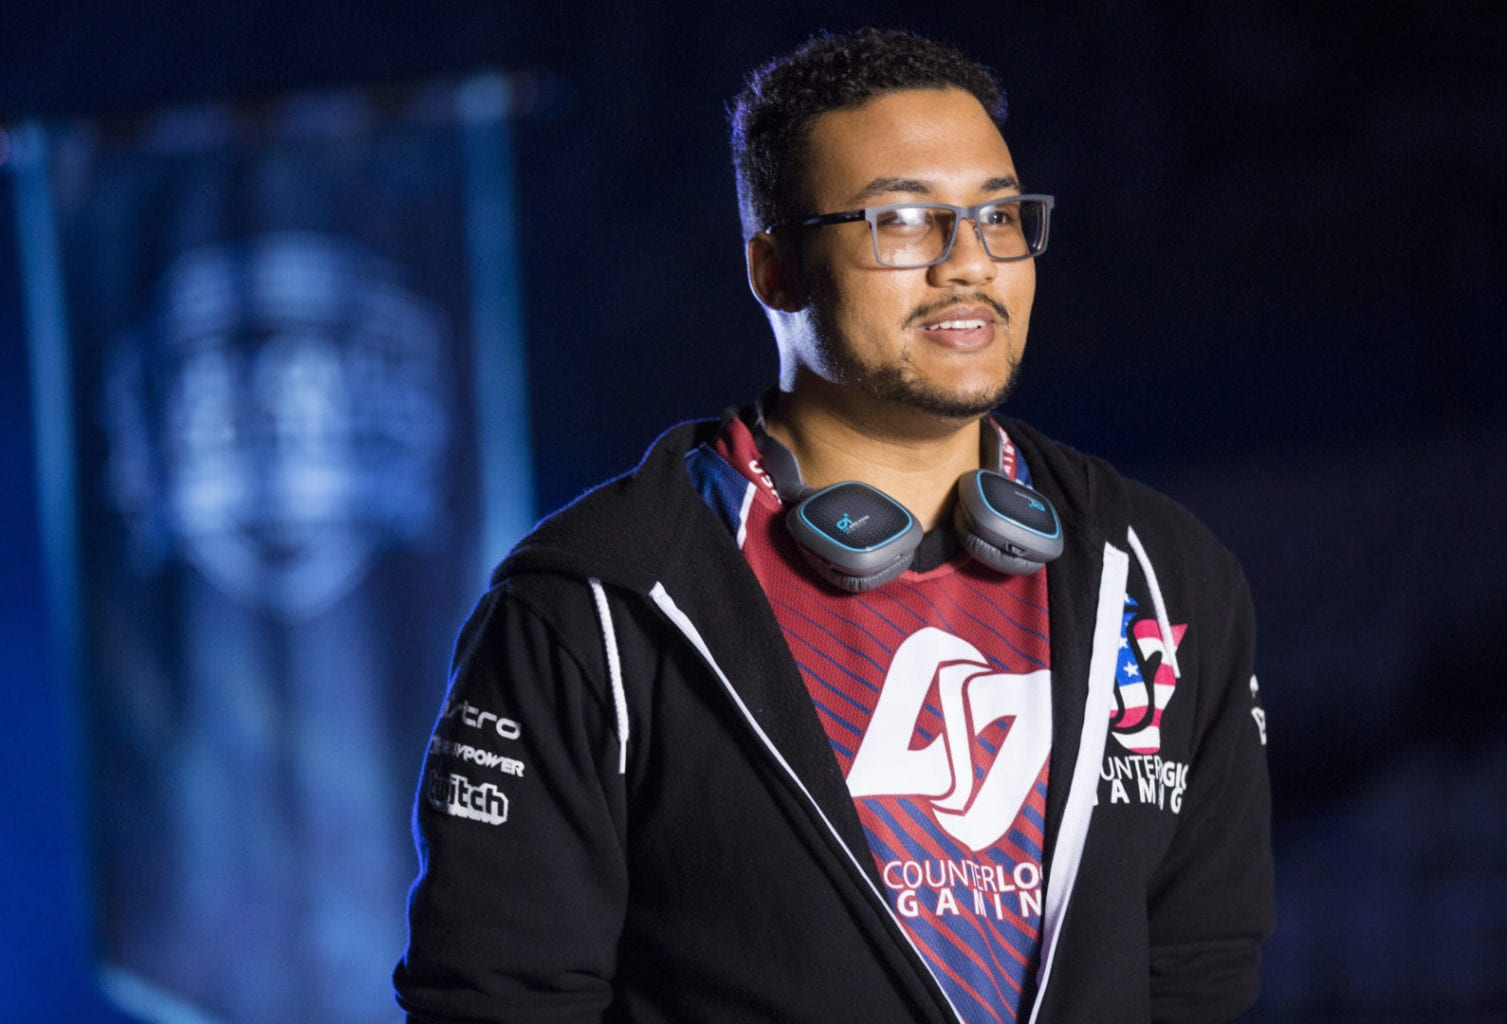 Aphromoo joined 100 Thieves for 2018